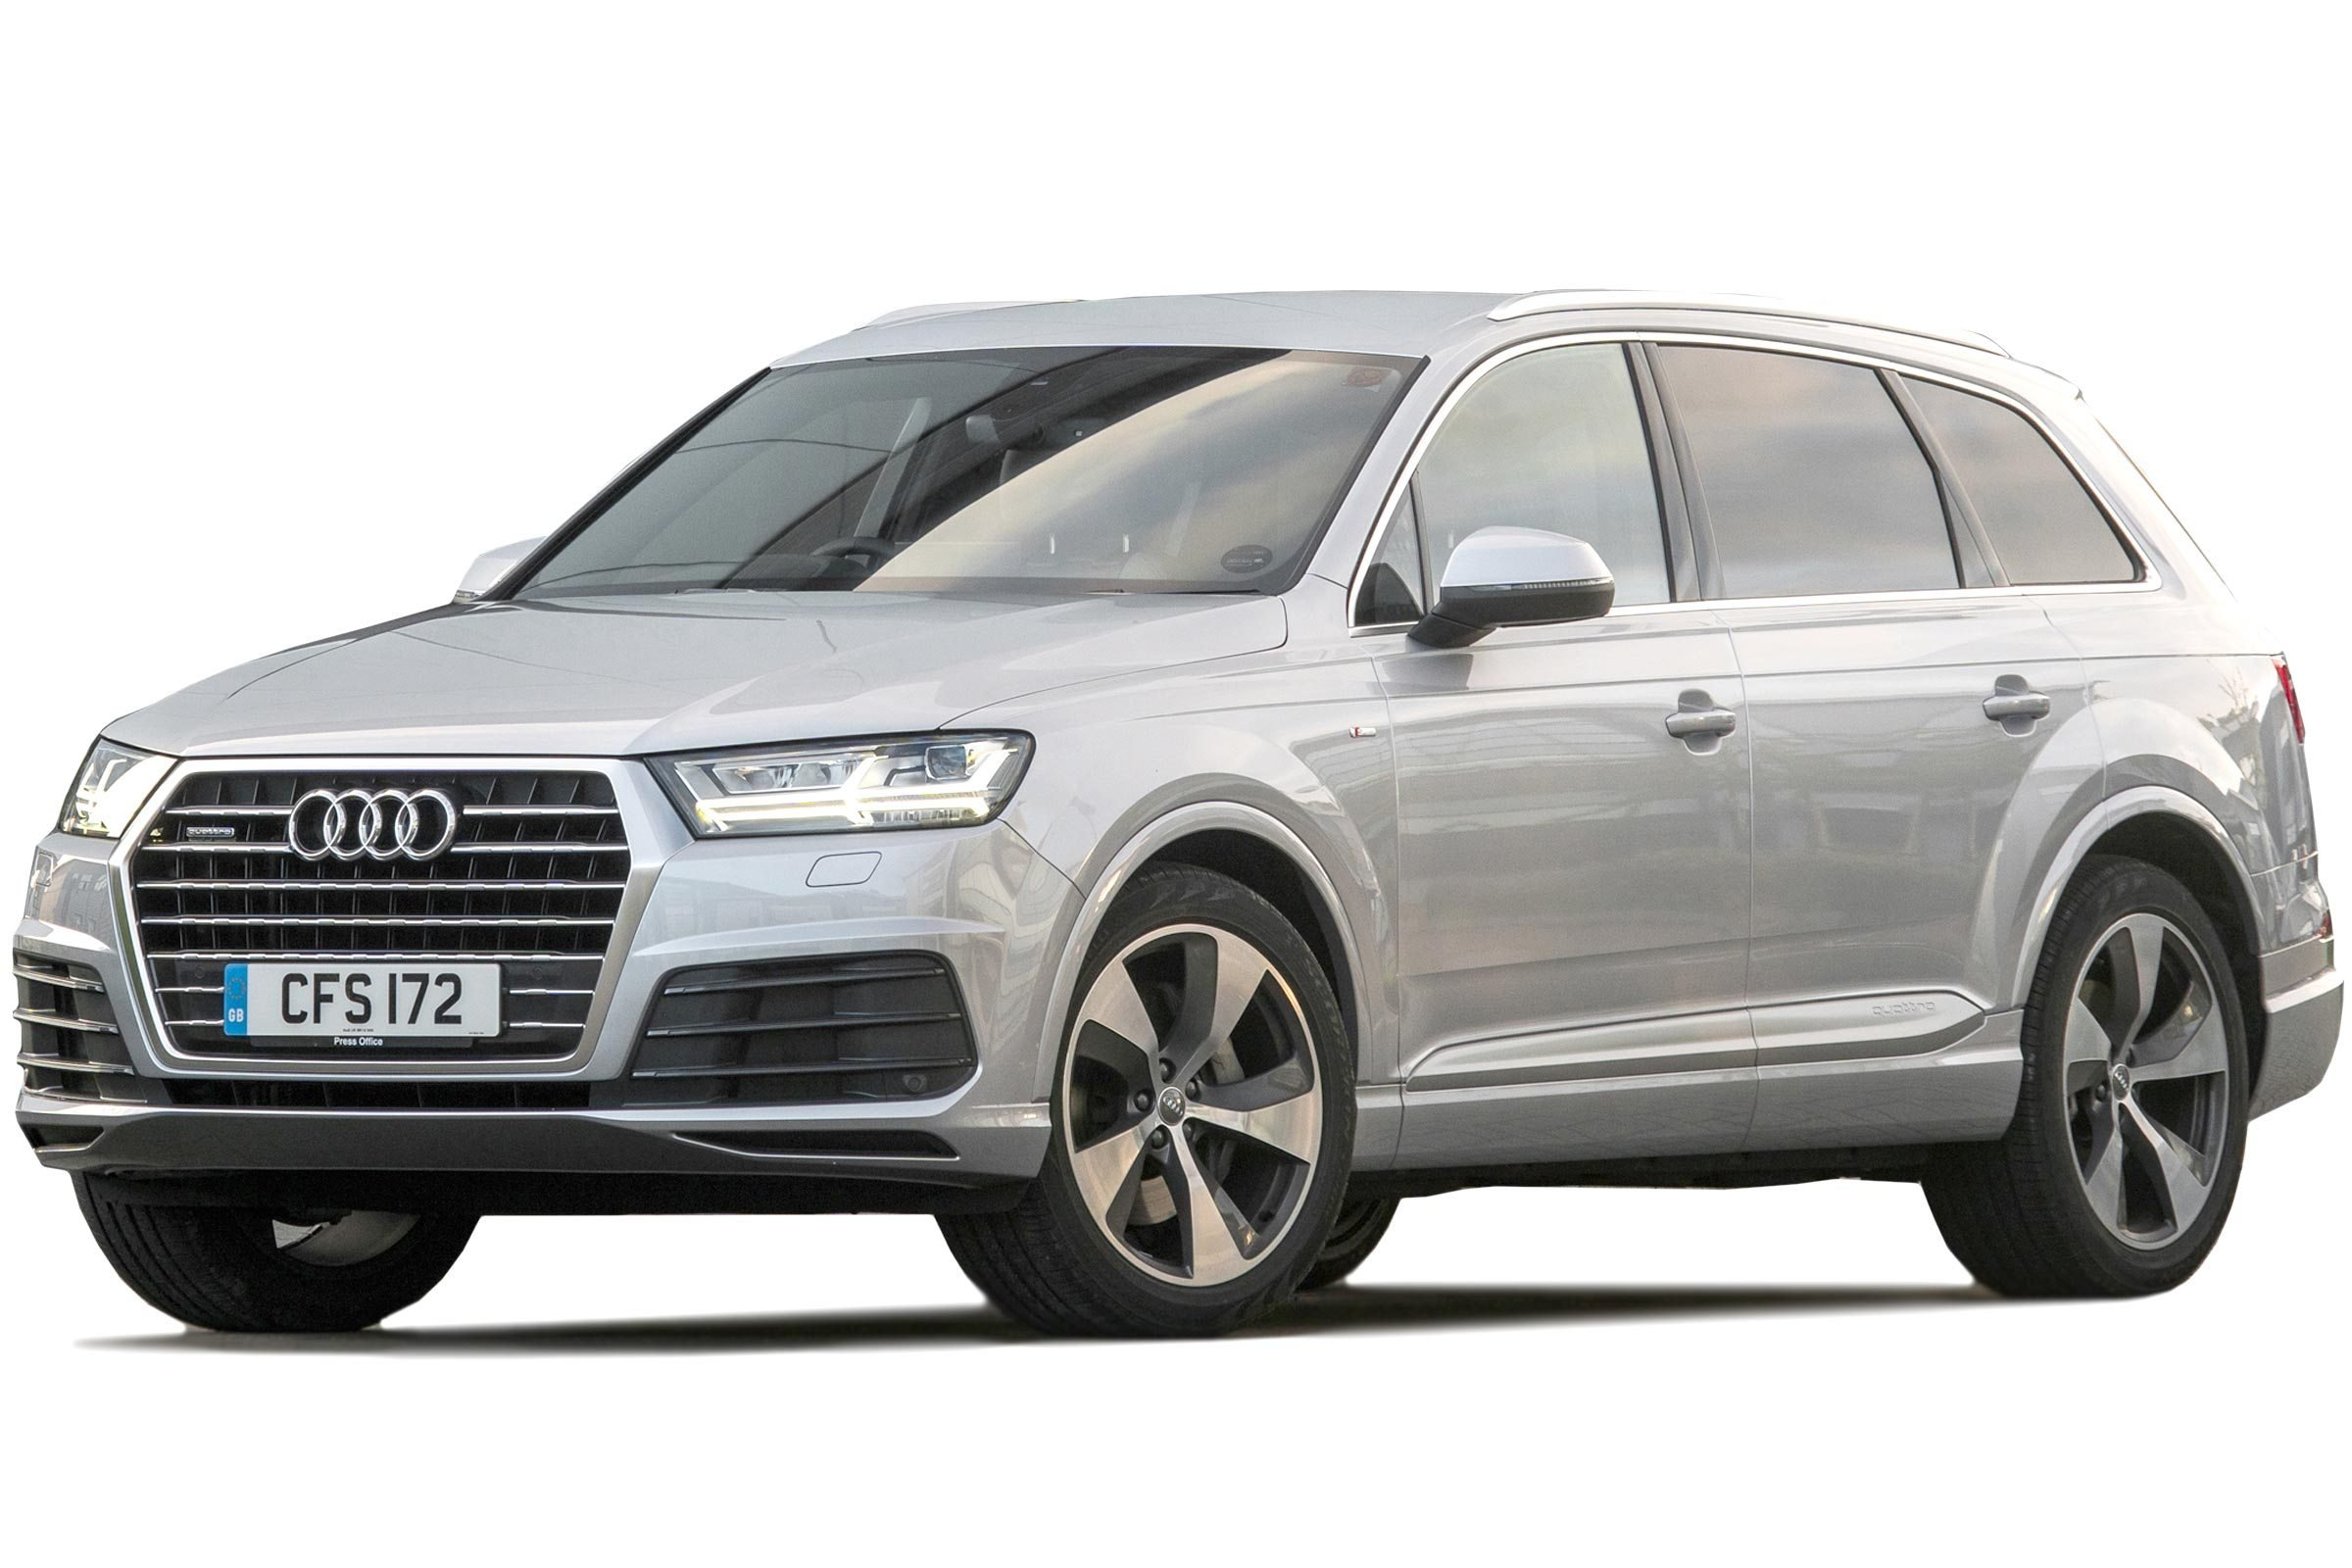 Latest Audi Q7 Suv 2019 Review Carbuyer Free Download